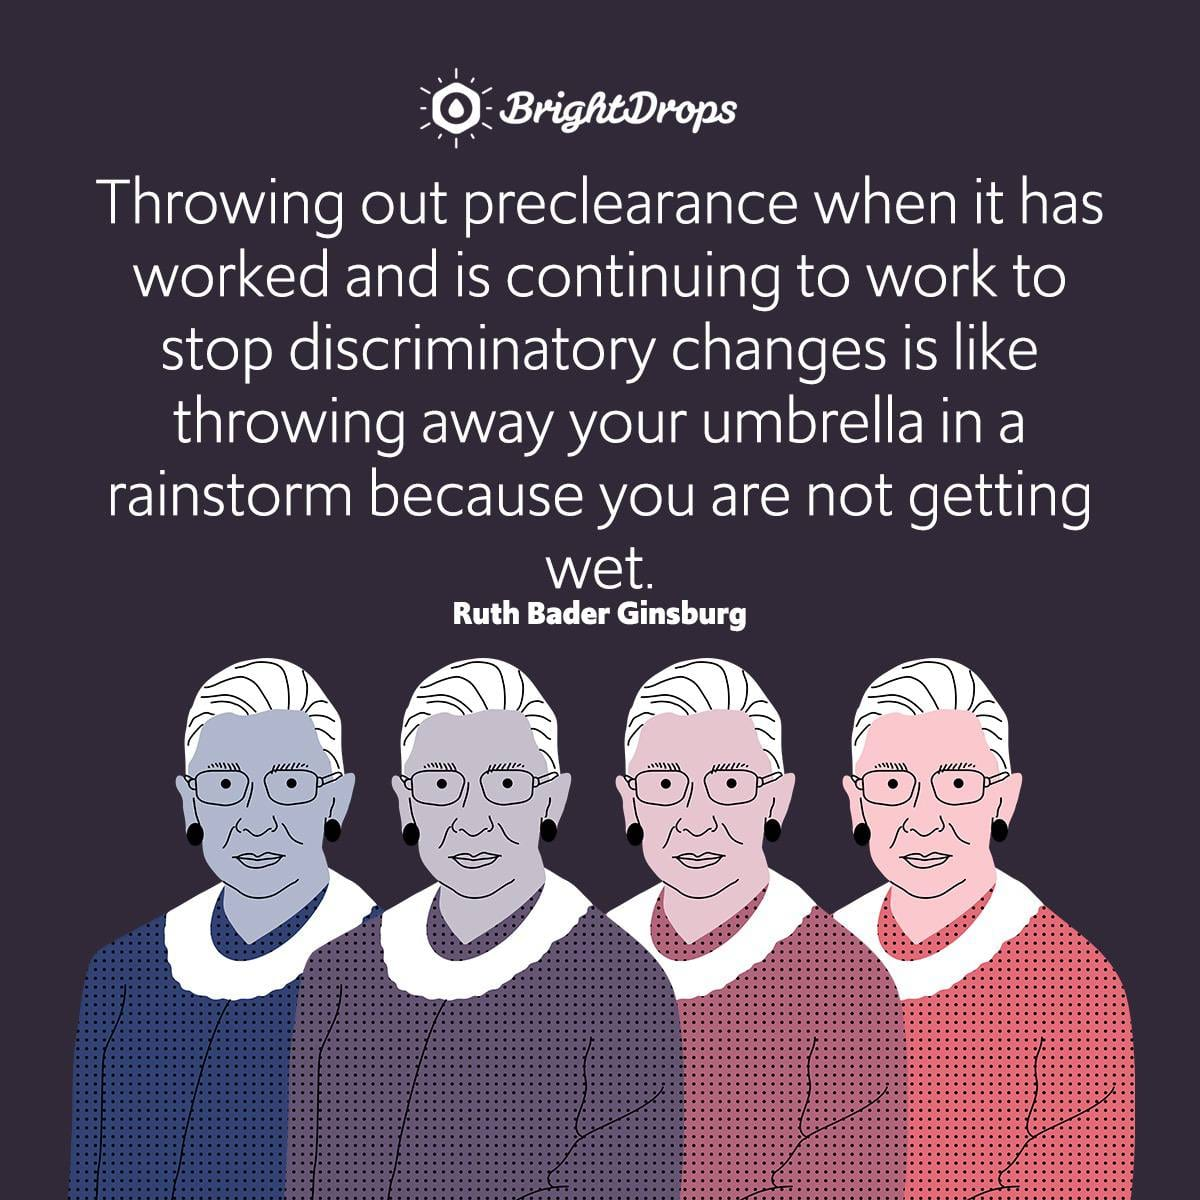 Throwing out preclearance when it has worked and is continuing to work to stop discriminatory changes is like throwing away your umbrella in a rainstorm because you are not getting wet.